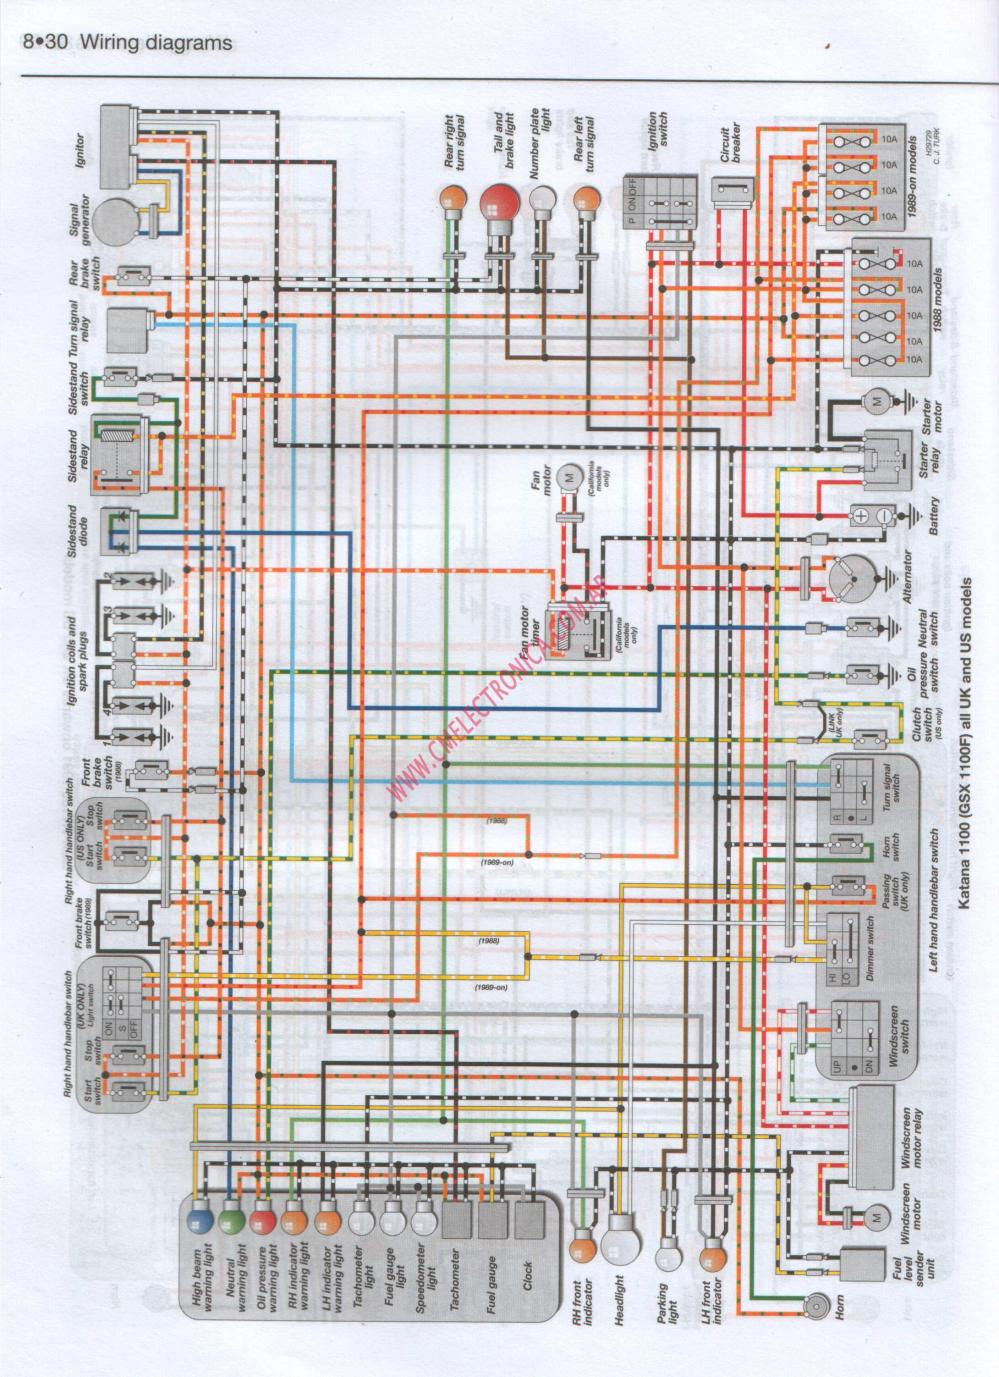 medium resolution of wrg 9424 wiring diagram suzuki bandit 400 1999 suzuki bandit 600 wiring diagram suzuki gsf 600 wiring diagram